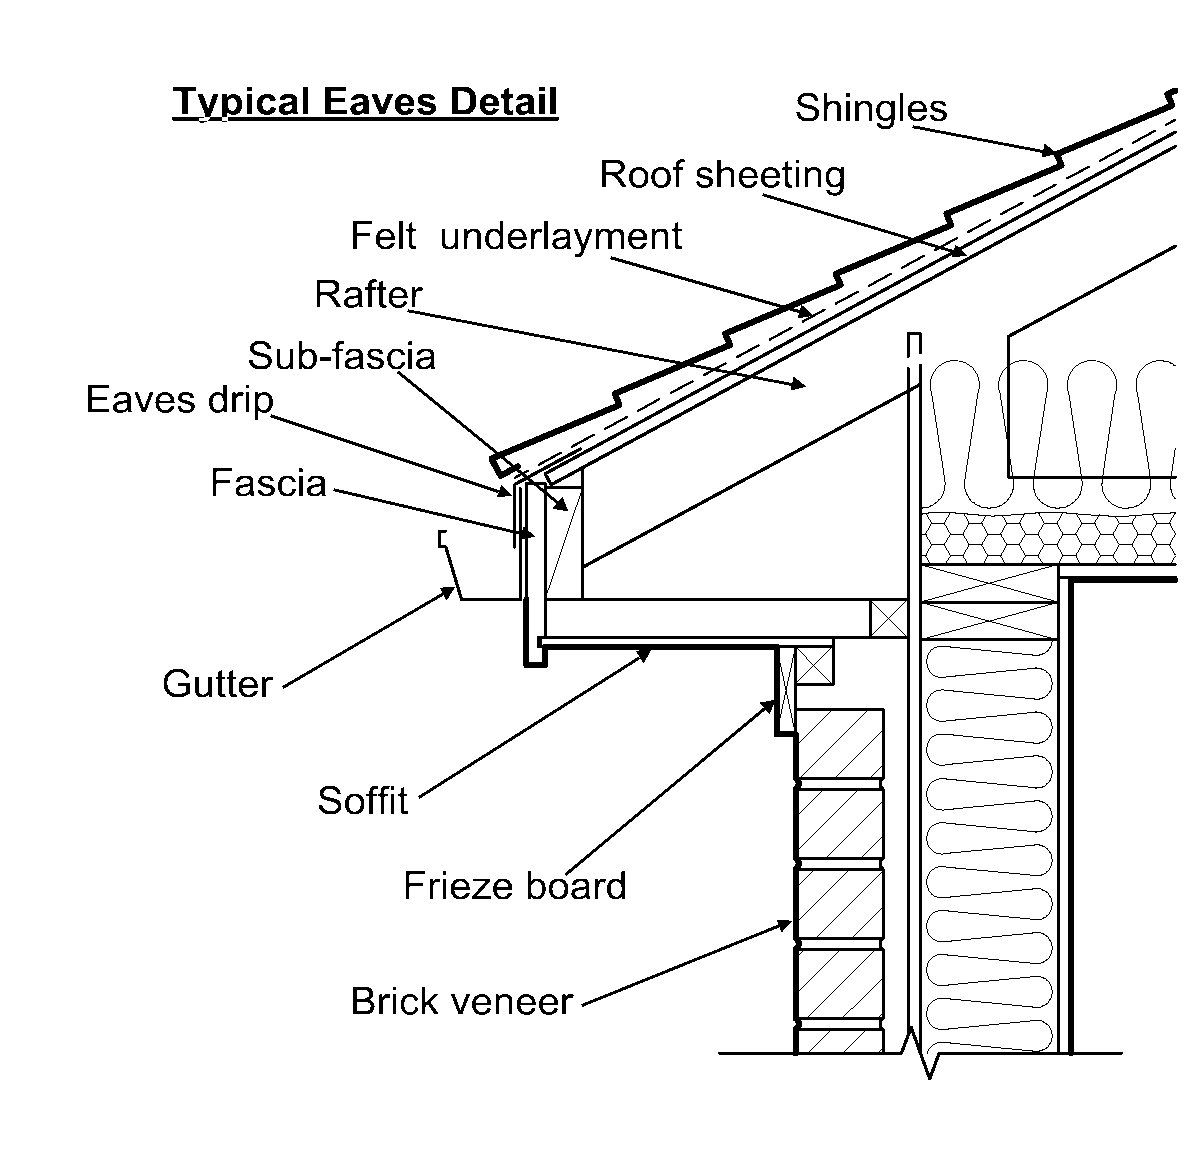 hight resolution of diagram of frieze wiring diagram yer diagram of freeze proof faucet diagram of frieze